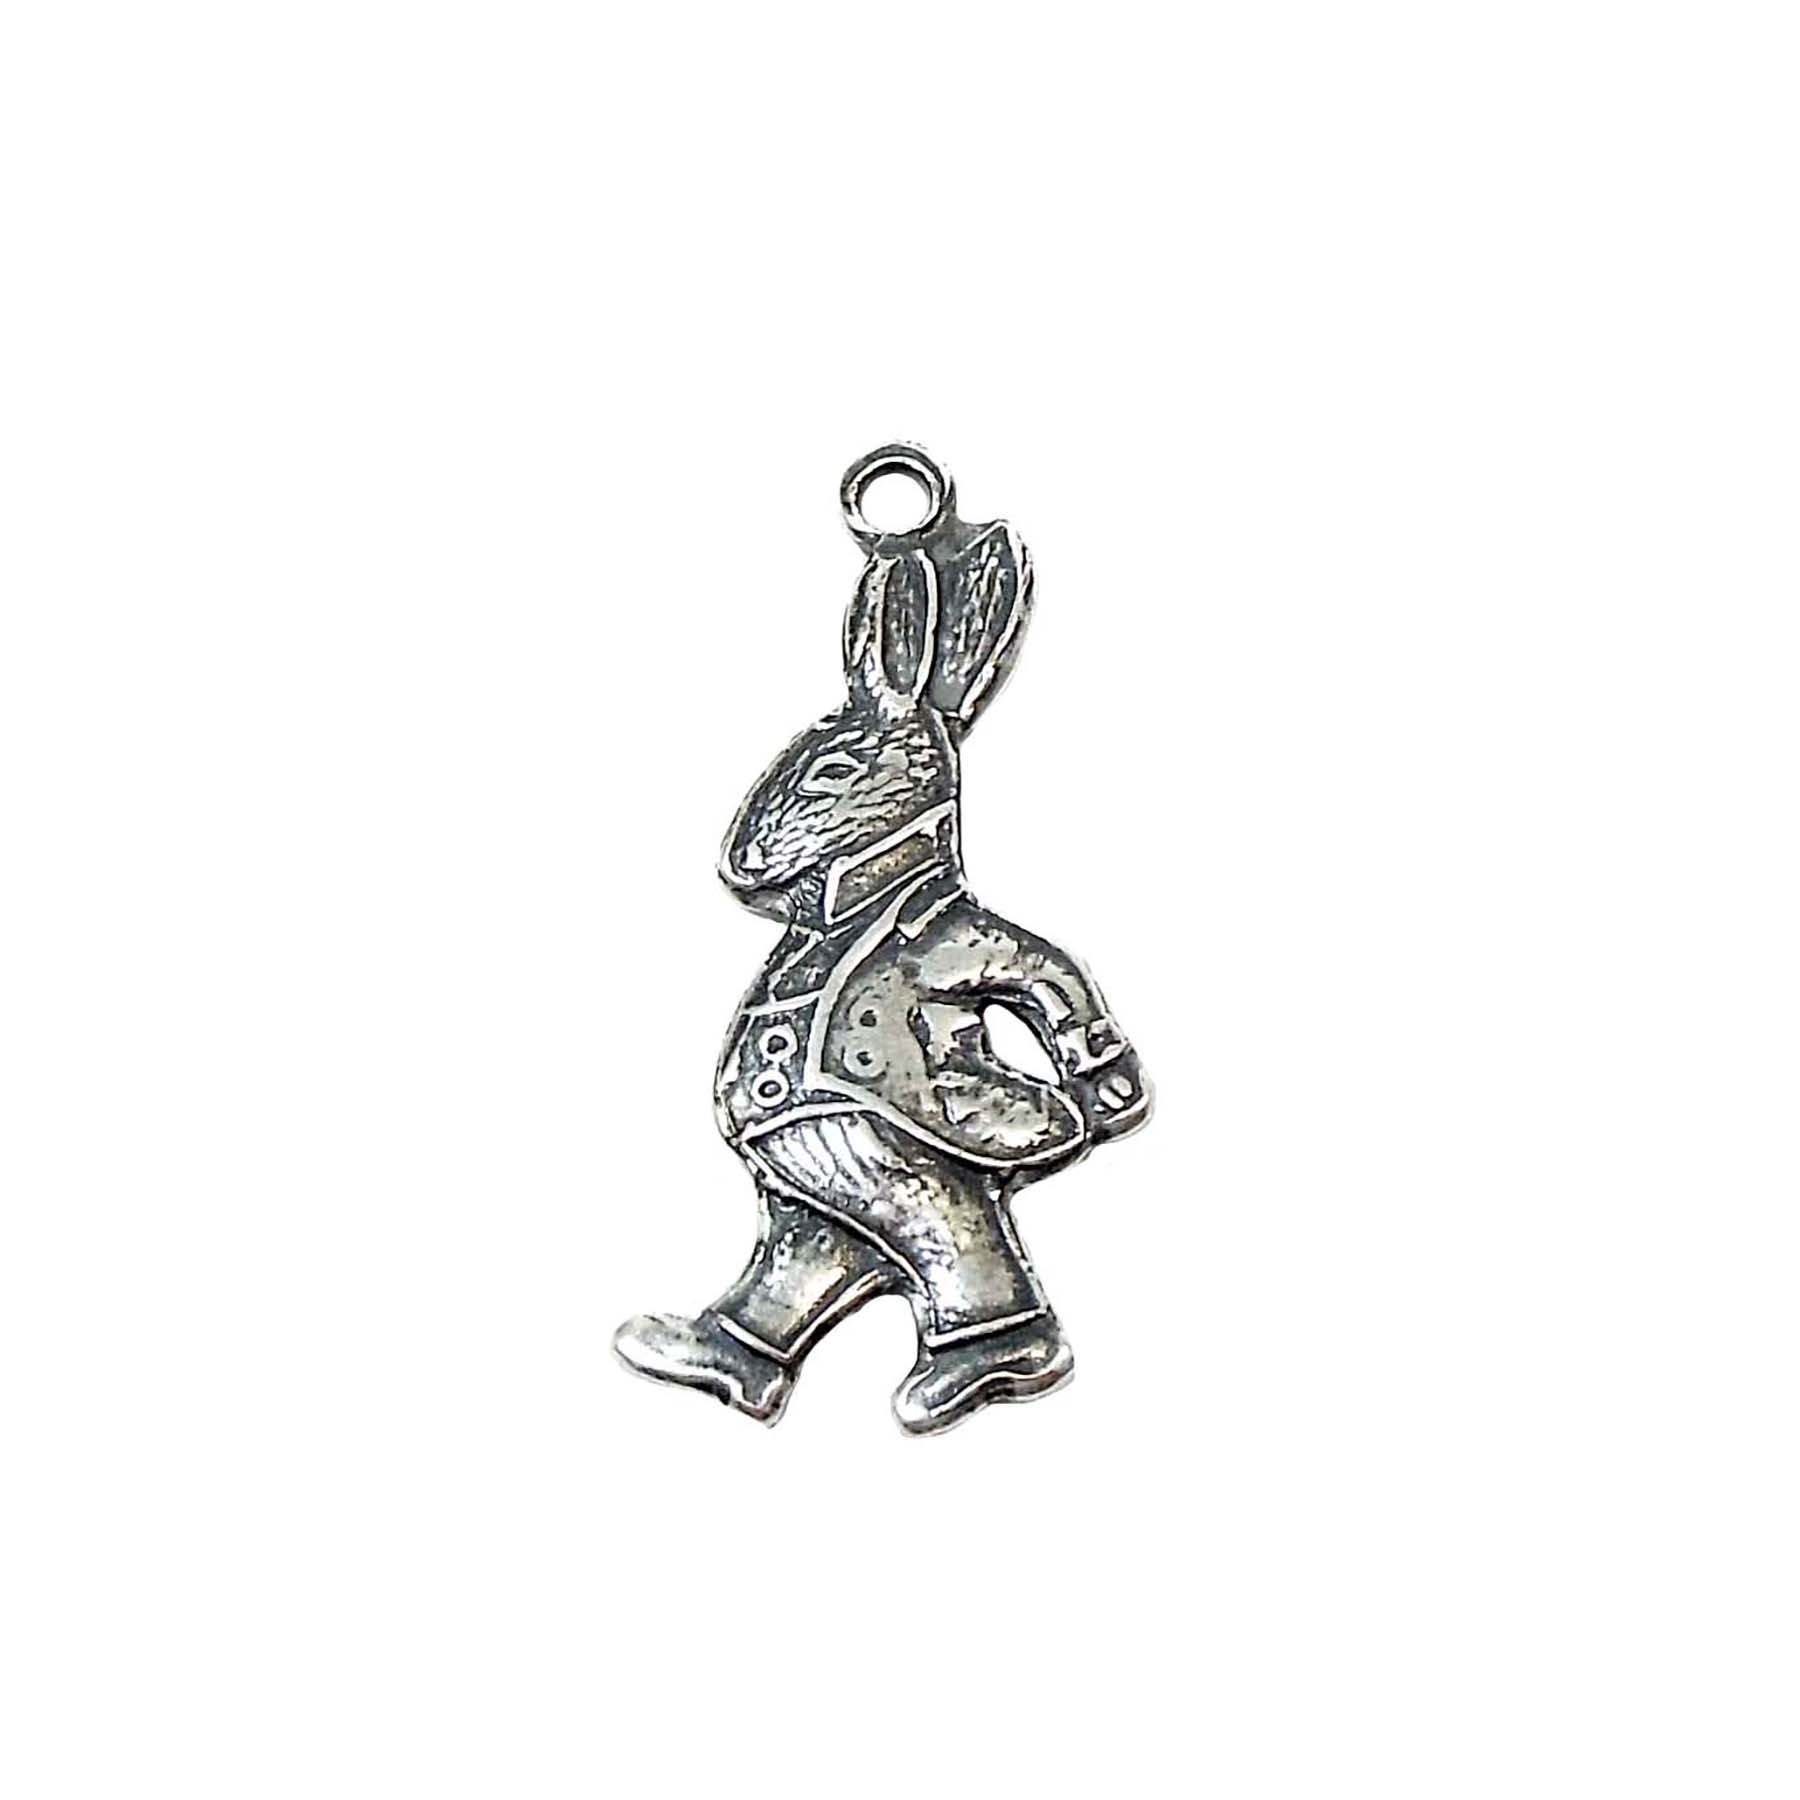 Rabbit charms, Peter Rabbit Charm, brass rabbit, silverware silver plate, antique silver, jewelry making supplies, vintage jewelry supplies, US made, nickel free, bsueboutiques, 02861